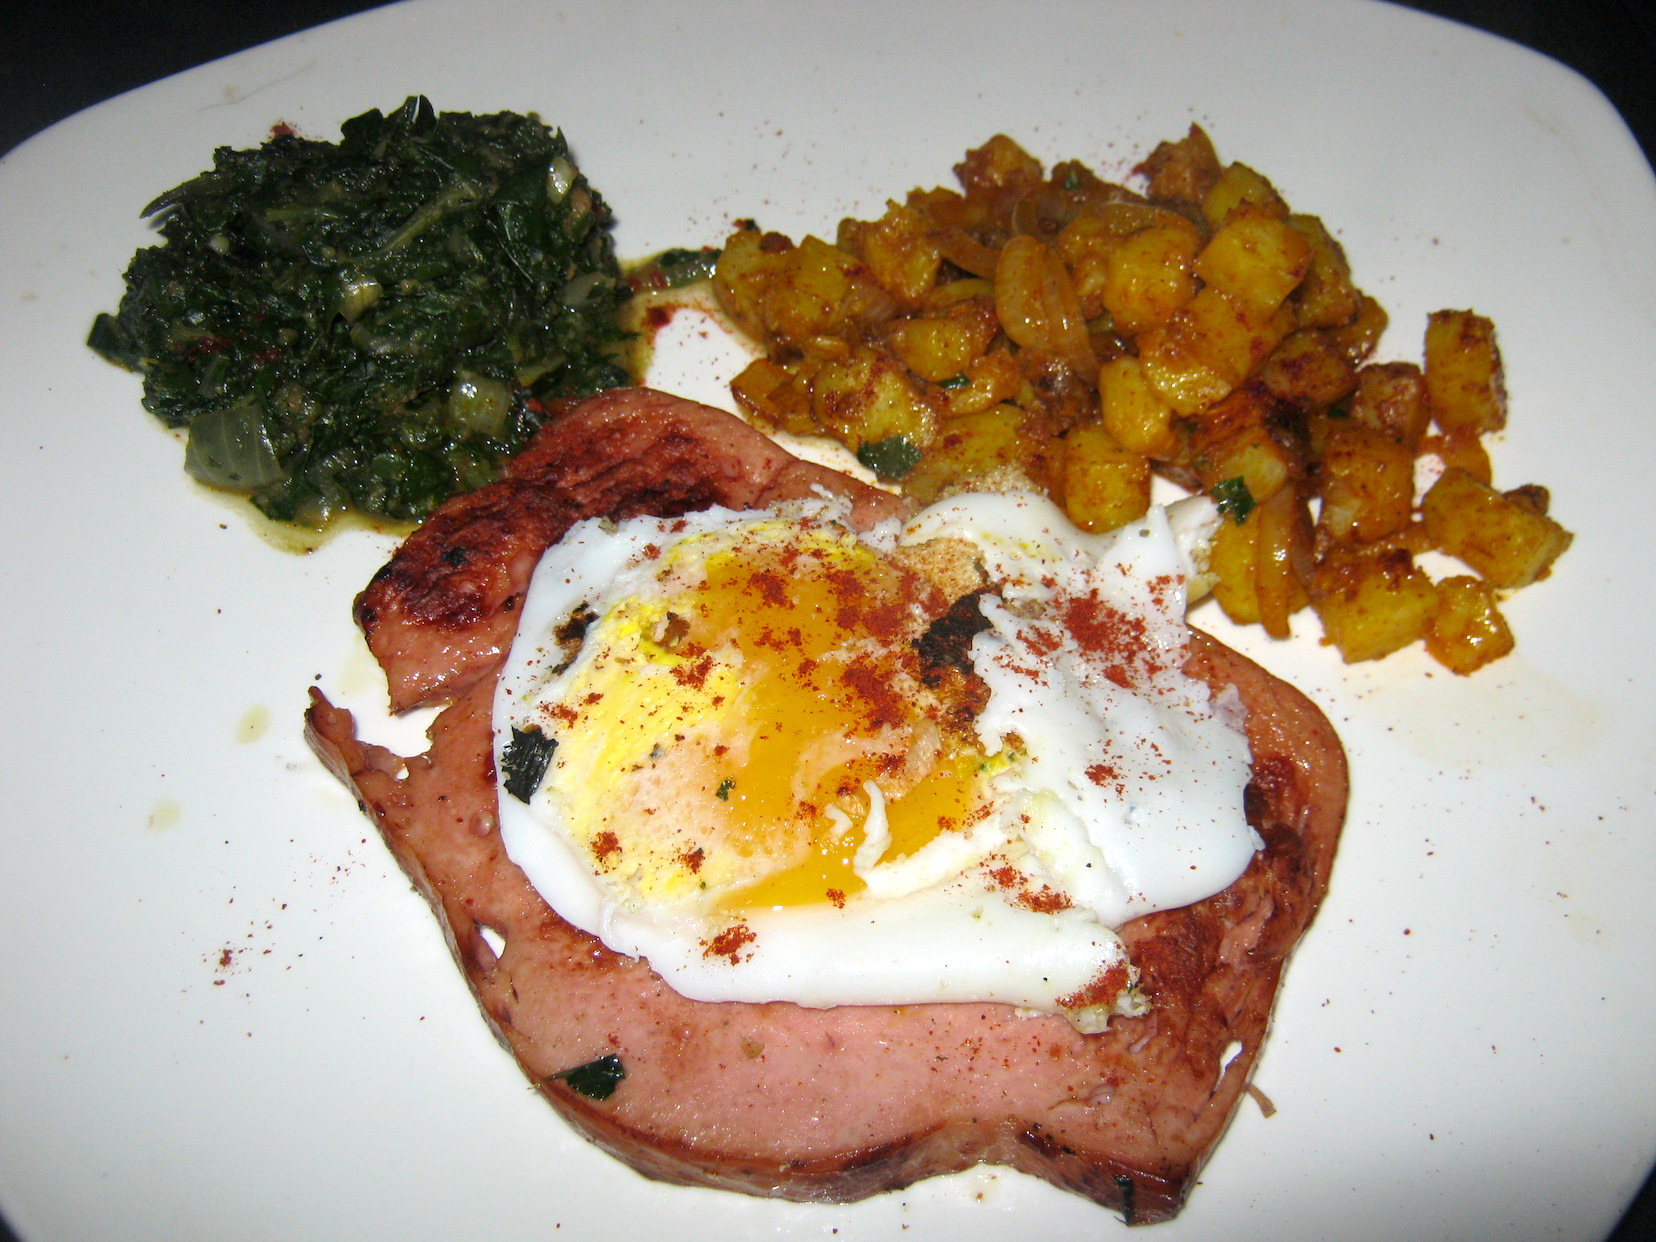 Liver loaf with pan fried eggs and spinach